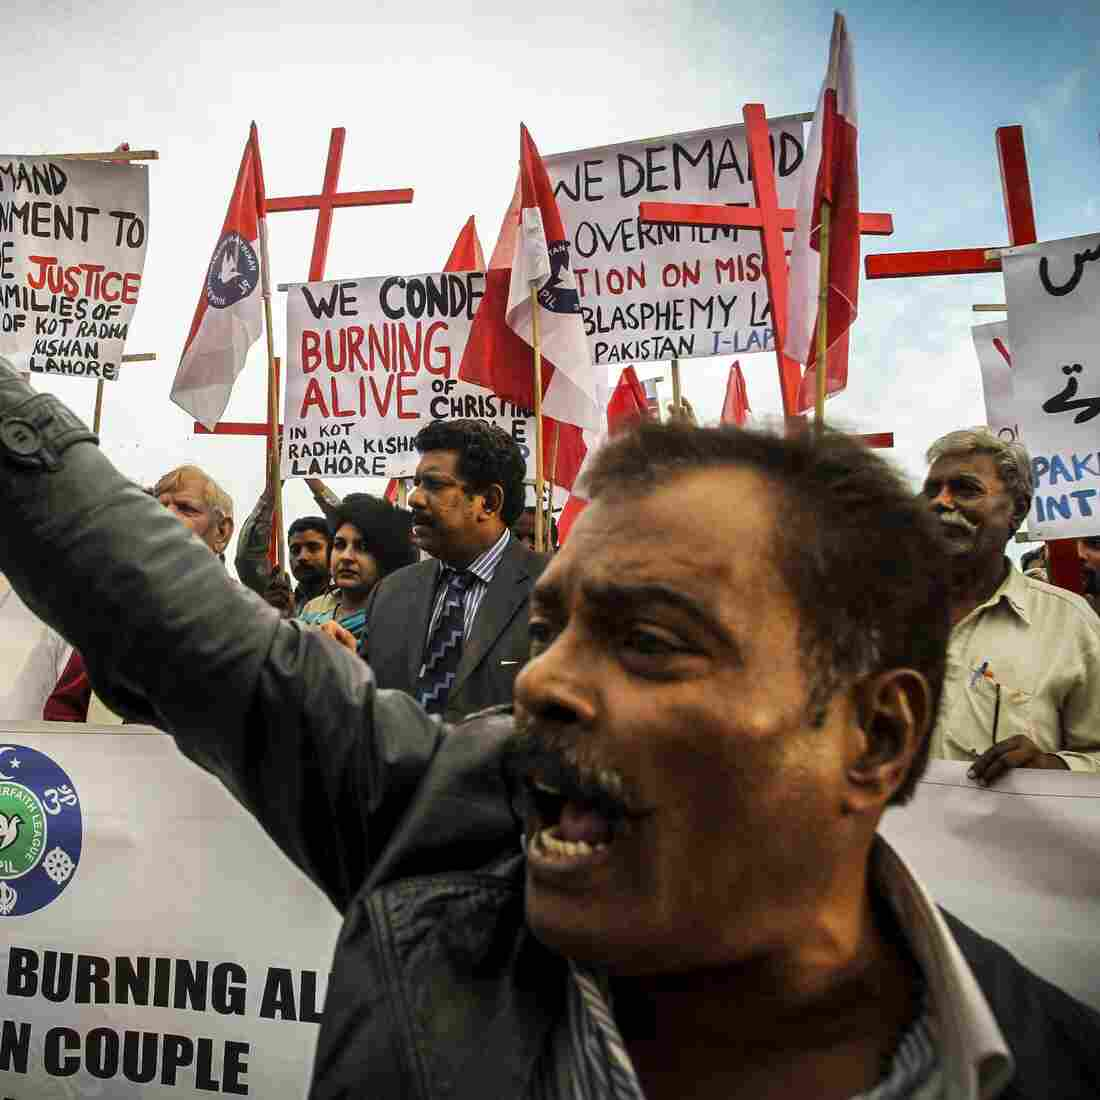 Pakistani Christians in Islamabad protest the killing of a Christian couple who were burned alive for alleged blasphemy. Pakistan has had multiple cases of vigilante killings against people accused of blasphemy against Islam.